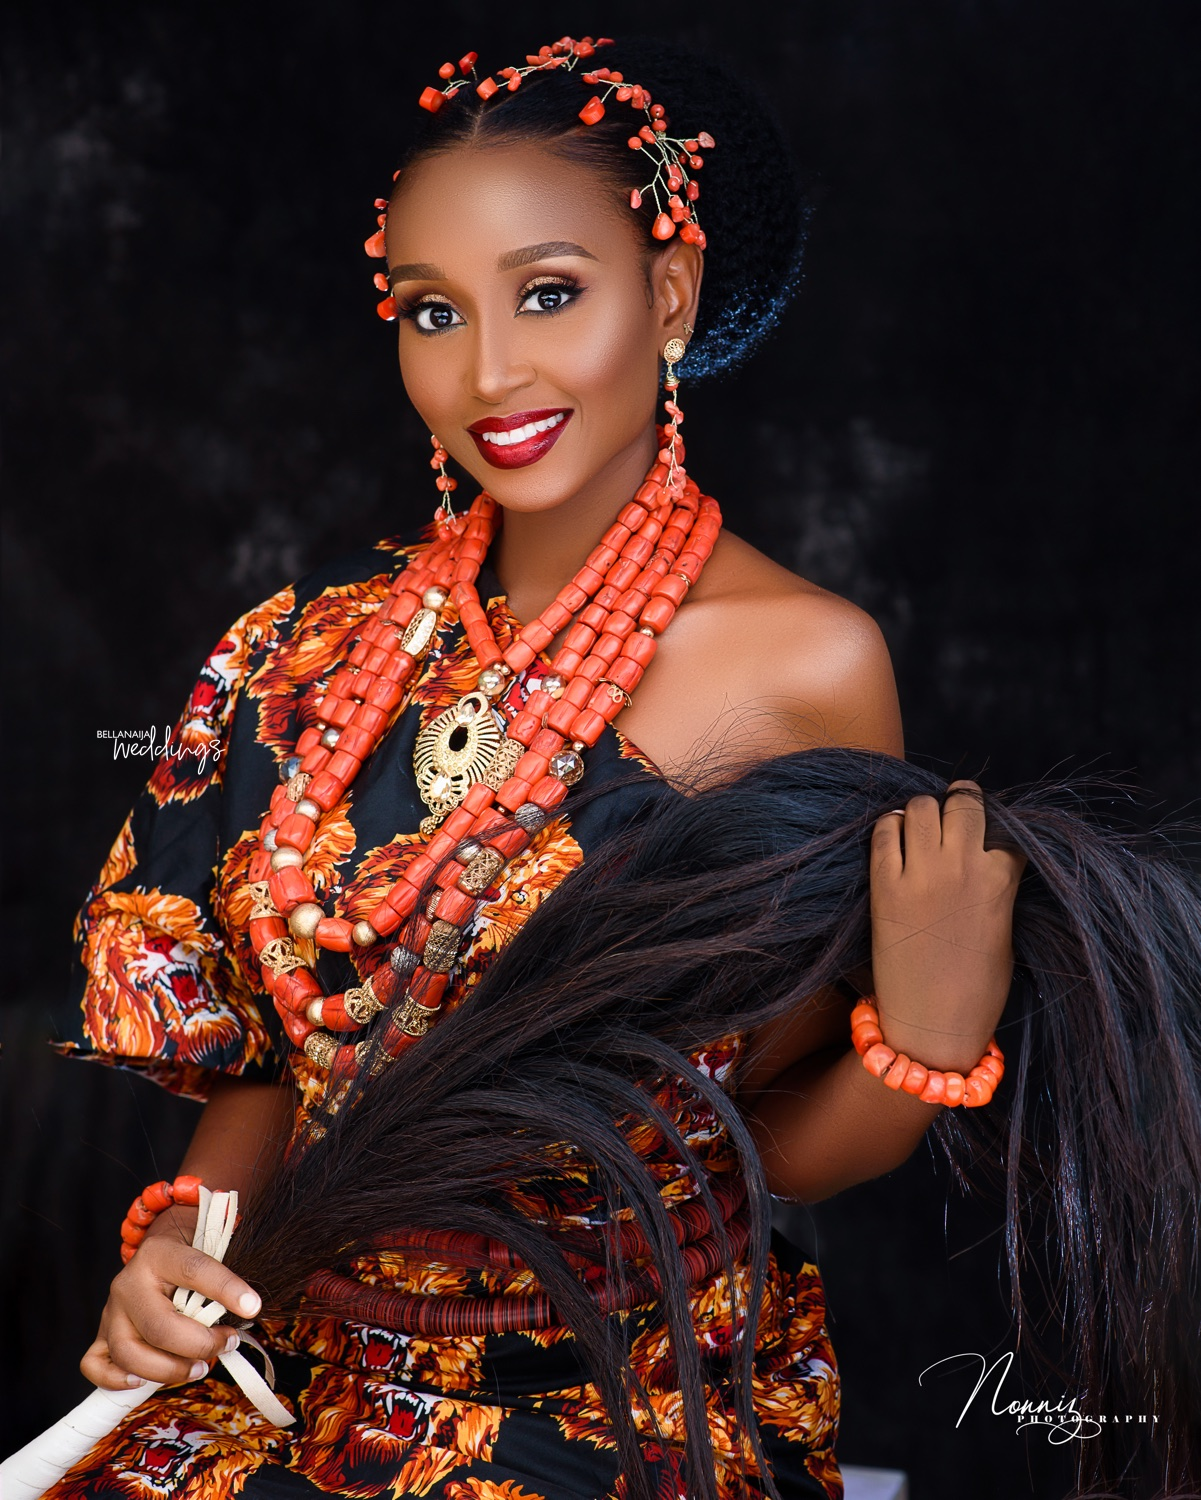 Coral Beads + a Stunning Hairstyle = Todays Igbo Bridal Beauty Look